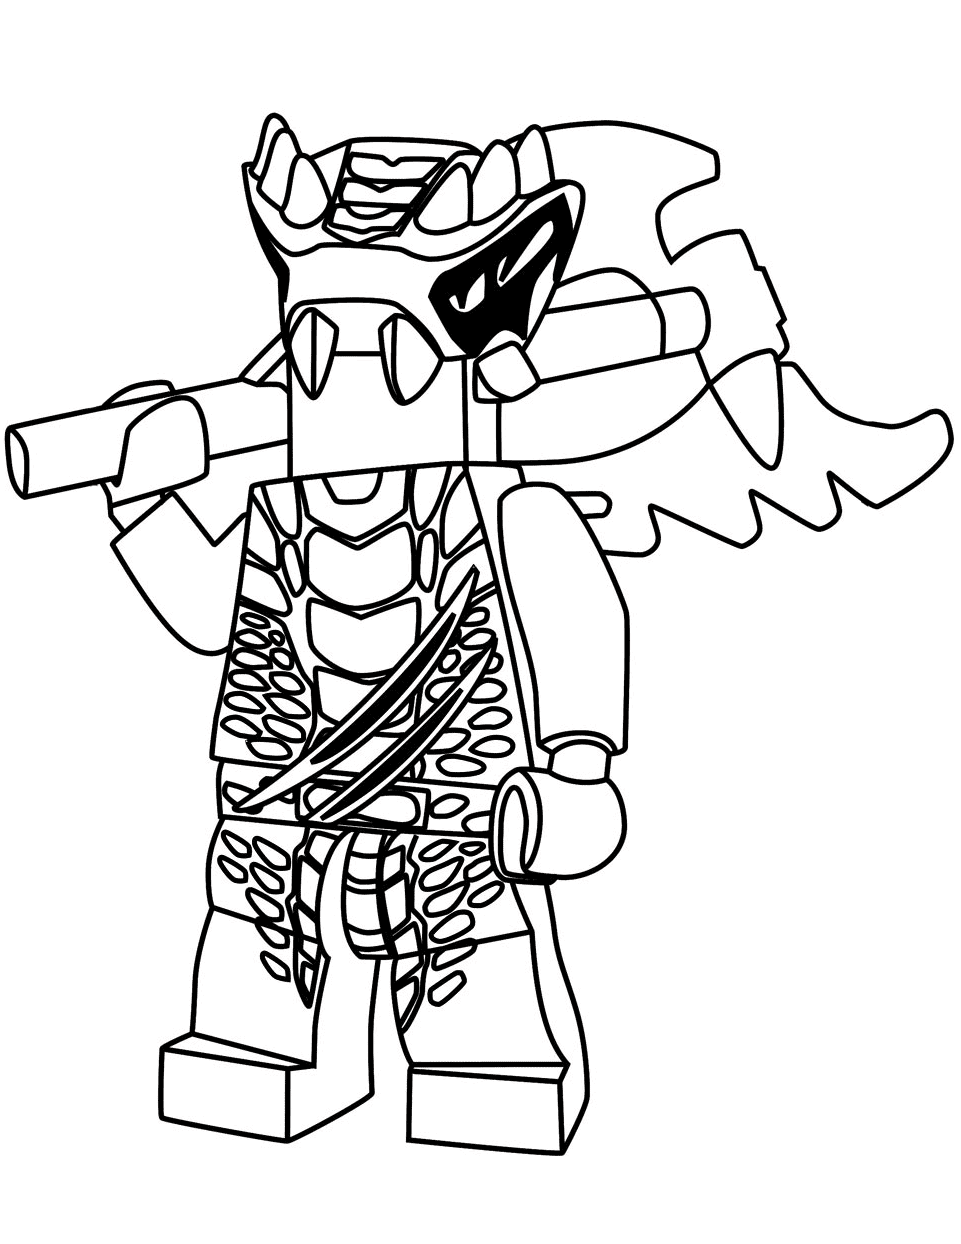 Ninjago Lizaru has spikes on his head Coloring Pages